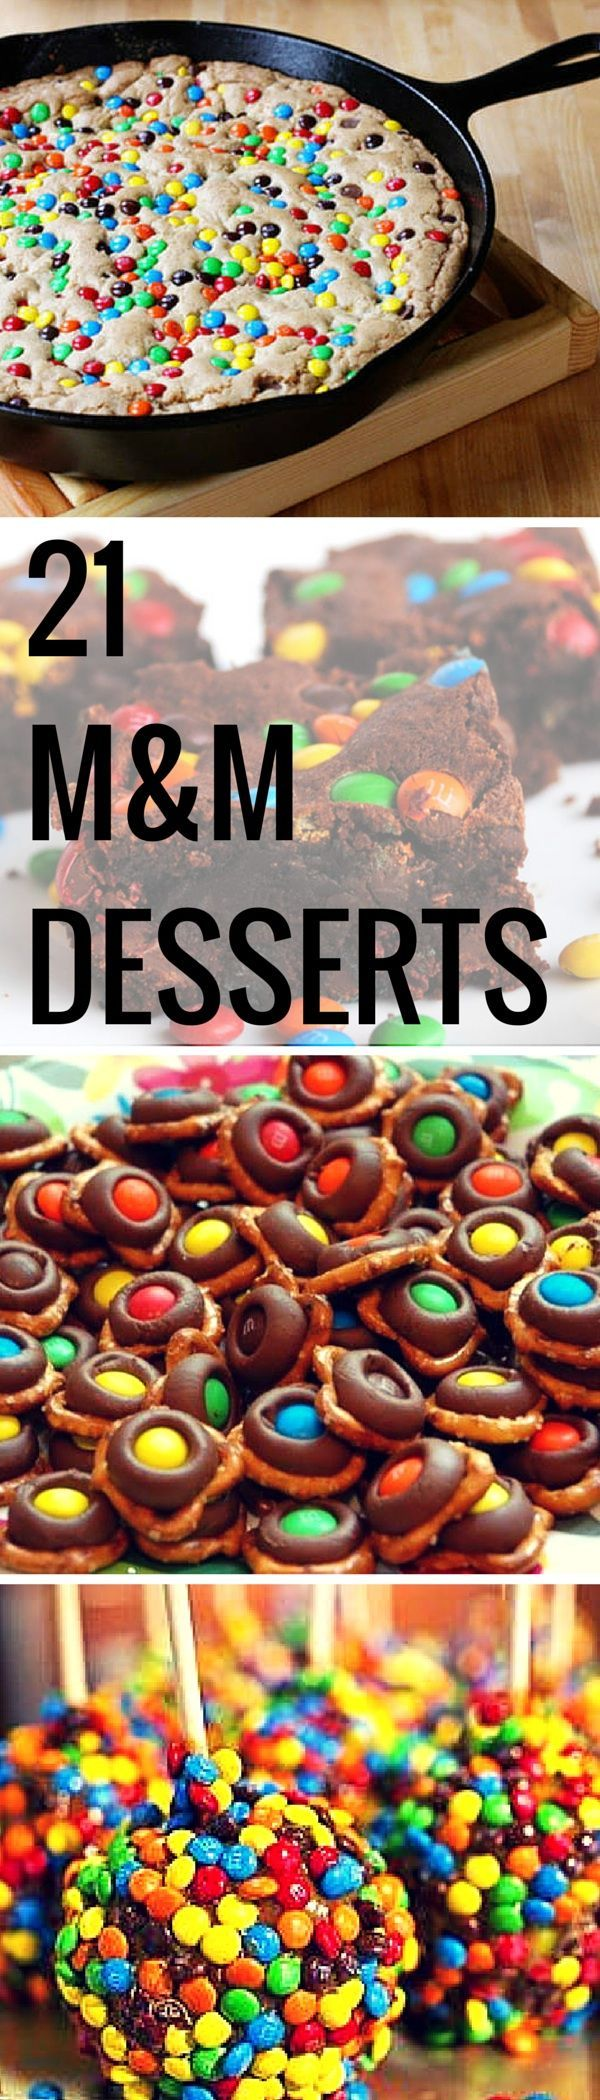 These 15 M&M desserts are a delicious must try for your next event or for just your next sweet treat craving